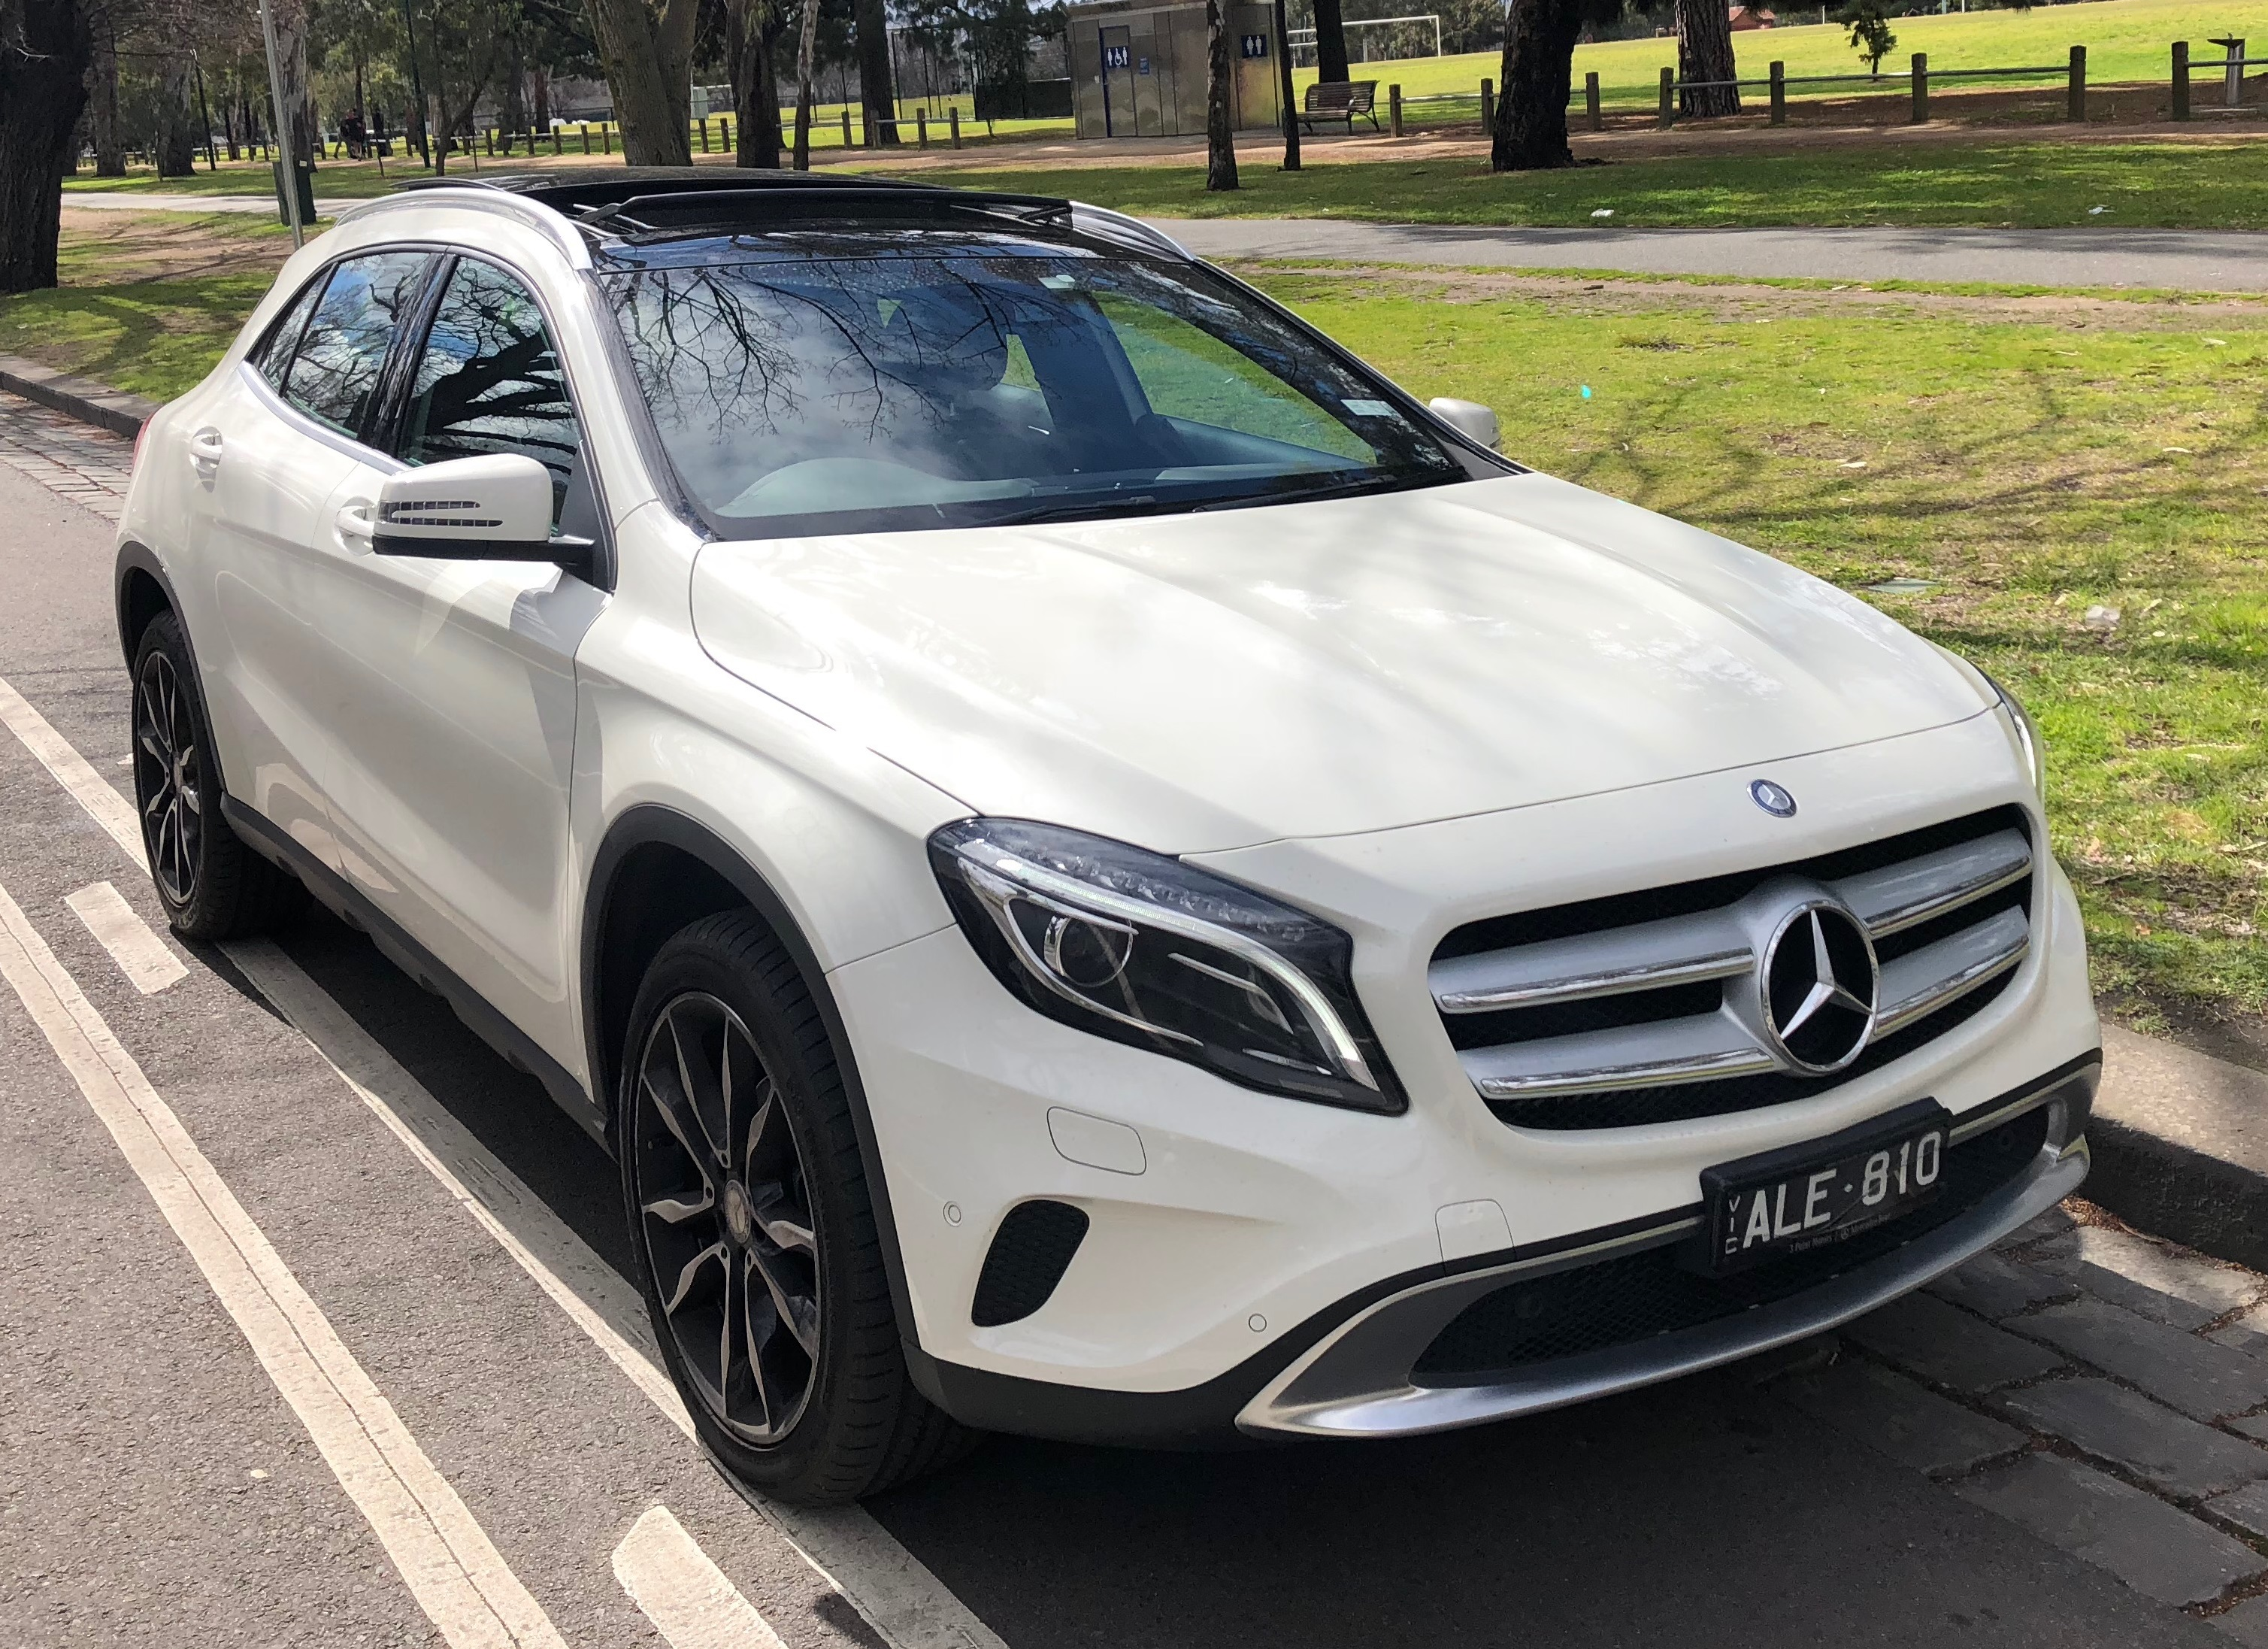 Picture of Shuaiqi's 2016 Mercedes-Benz GLA220d